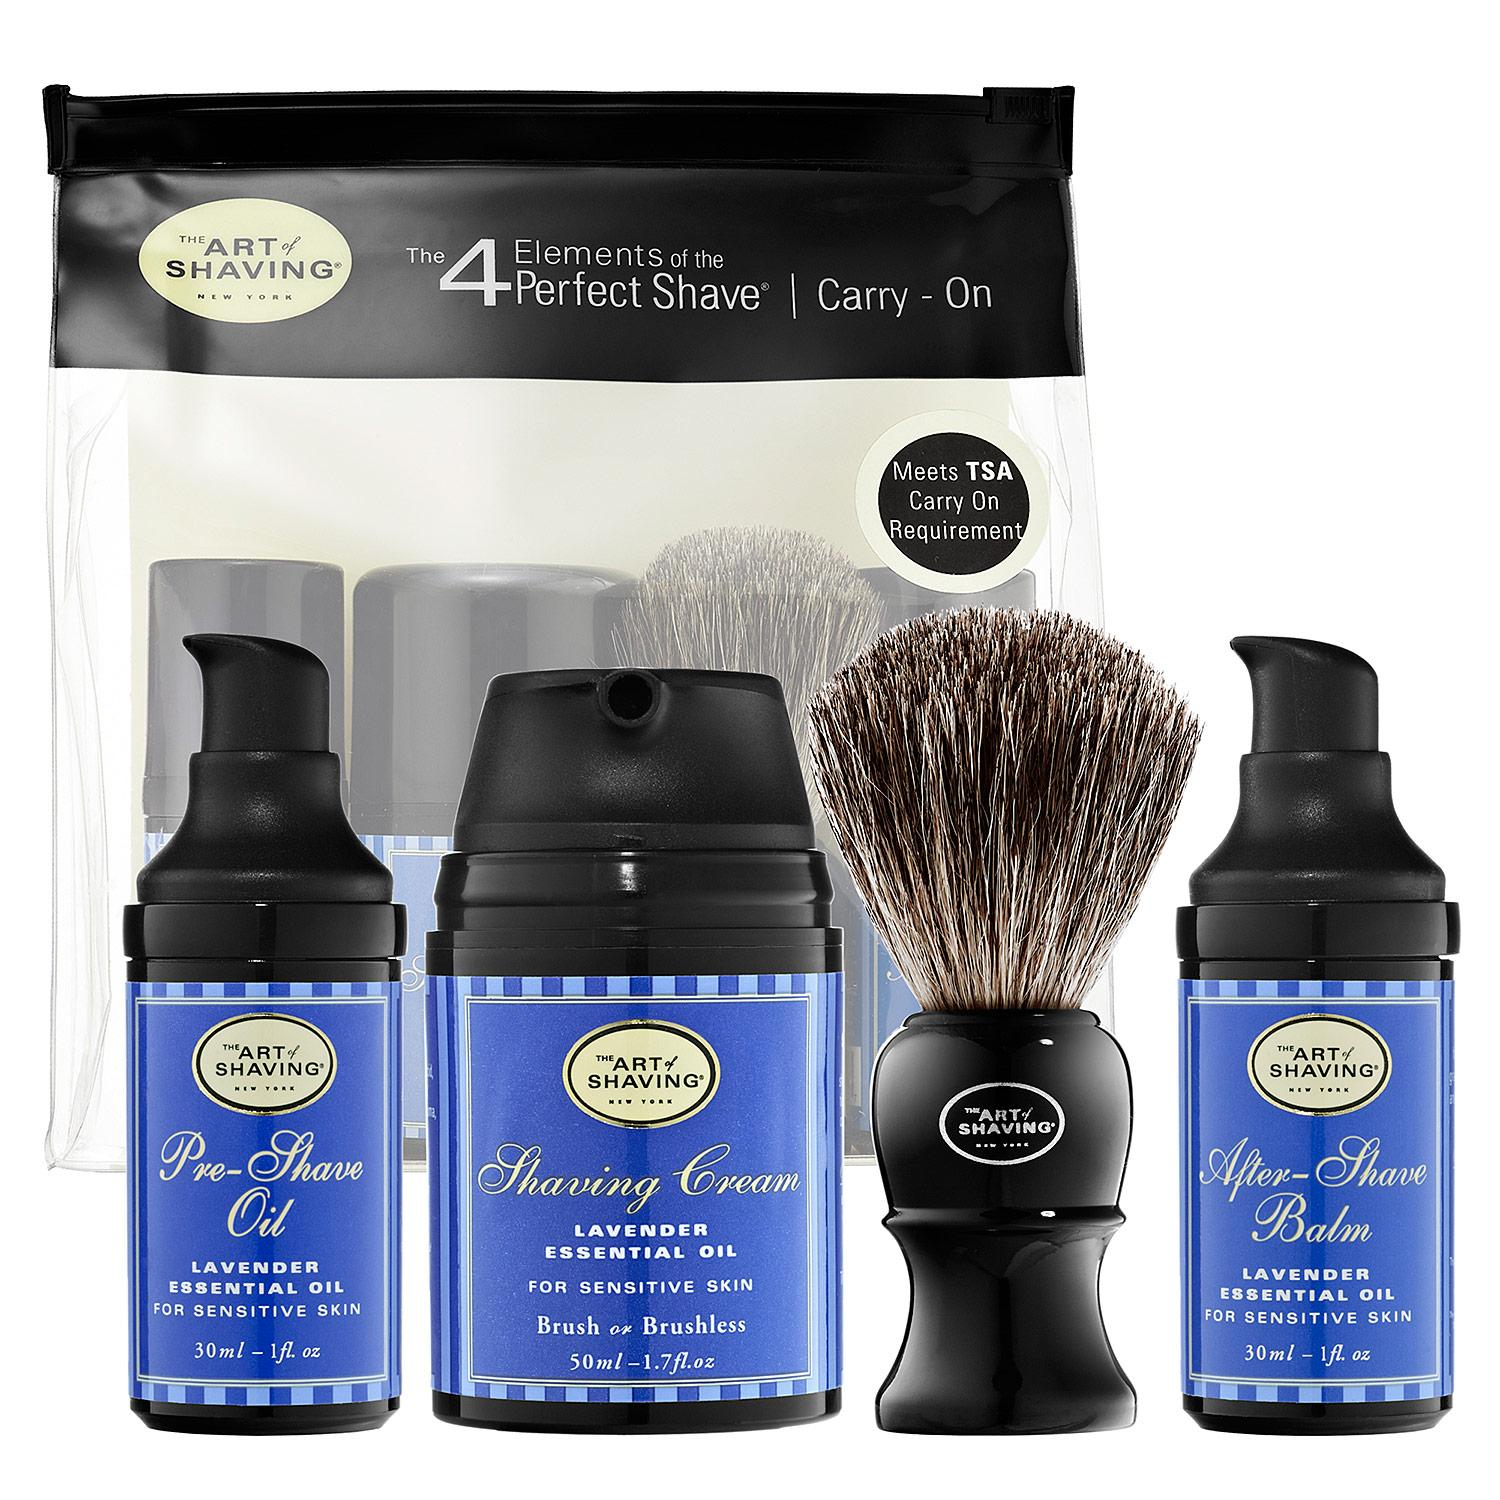 The 4 Elements of the Perfect Shave™ Carry-On - Lavender